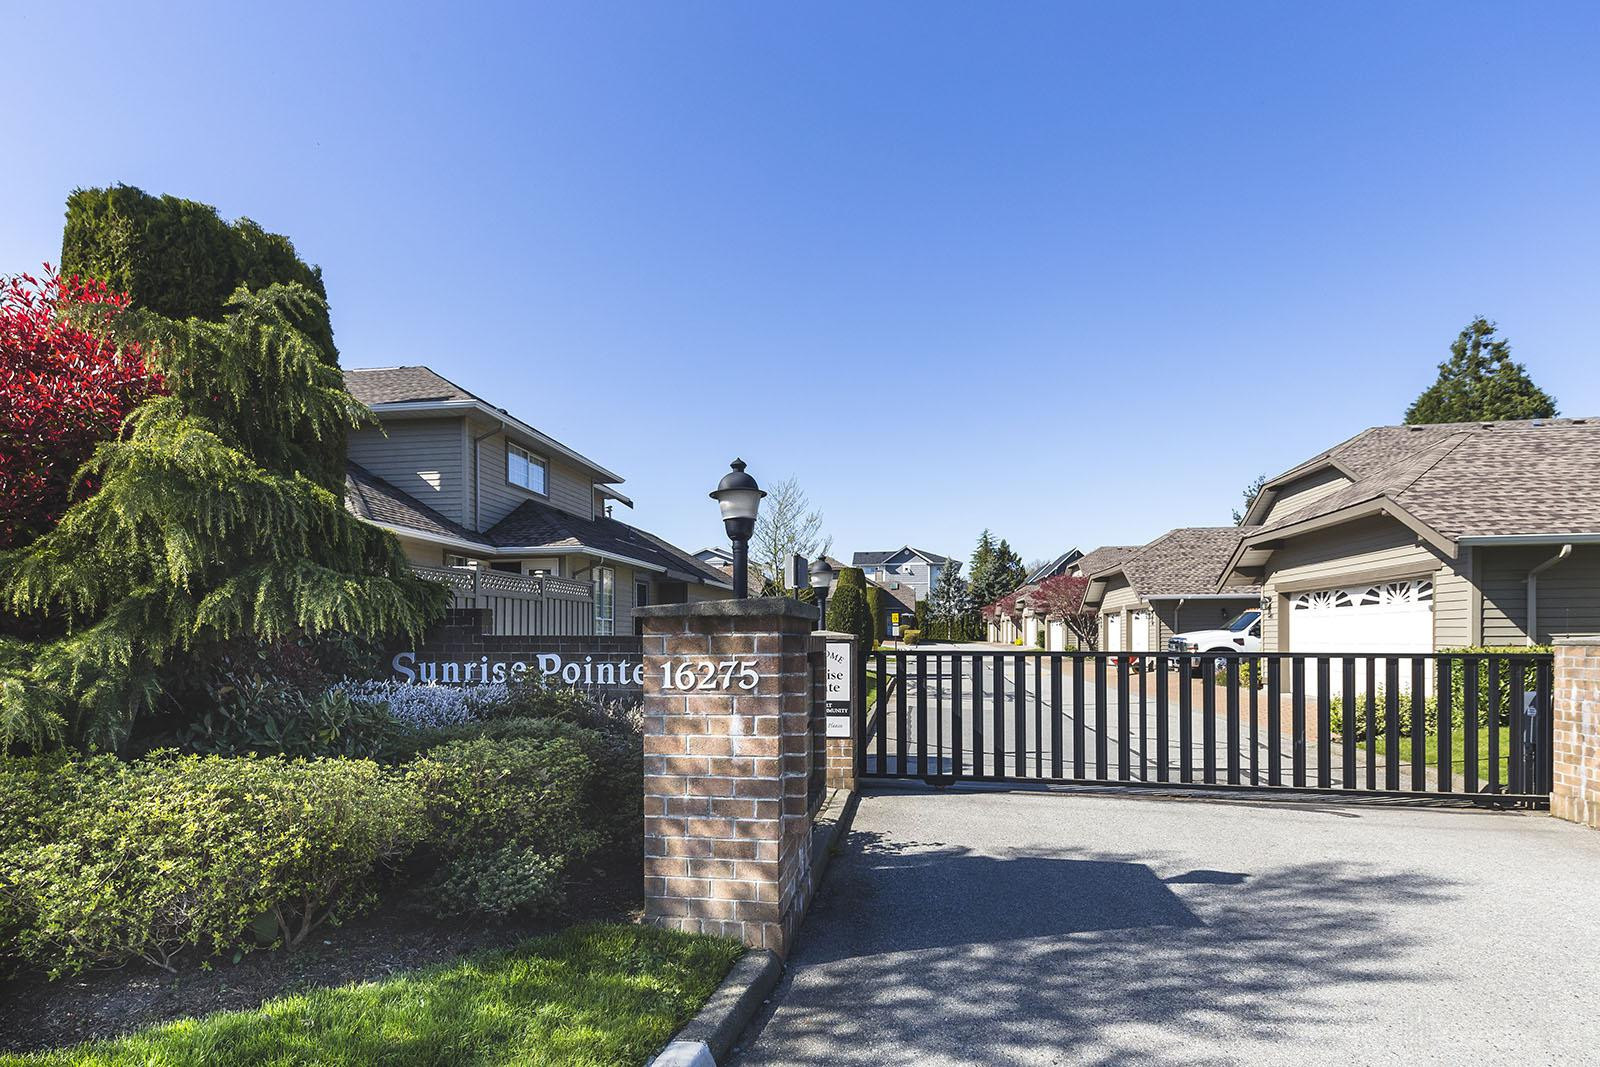 Sunrise Pointe at 16275 15 Ave, Surrey 0